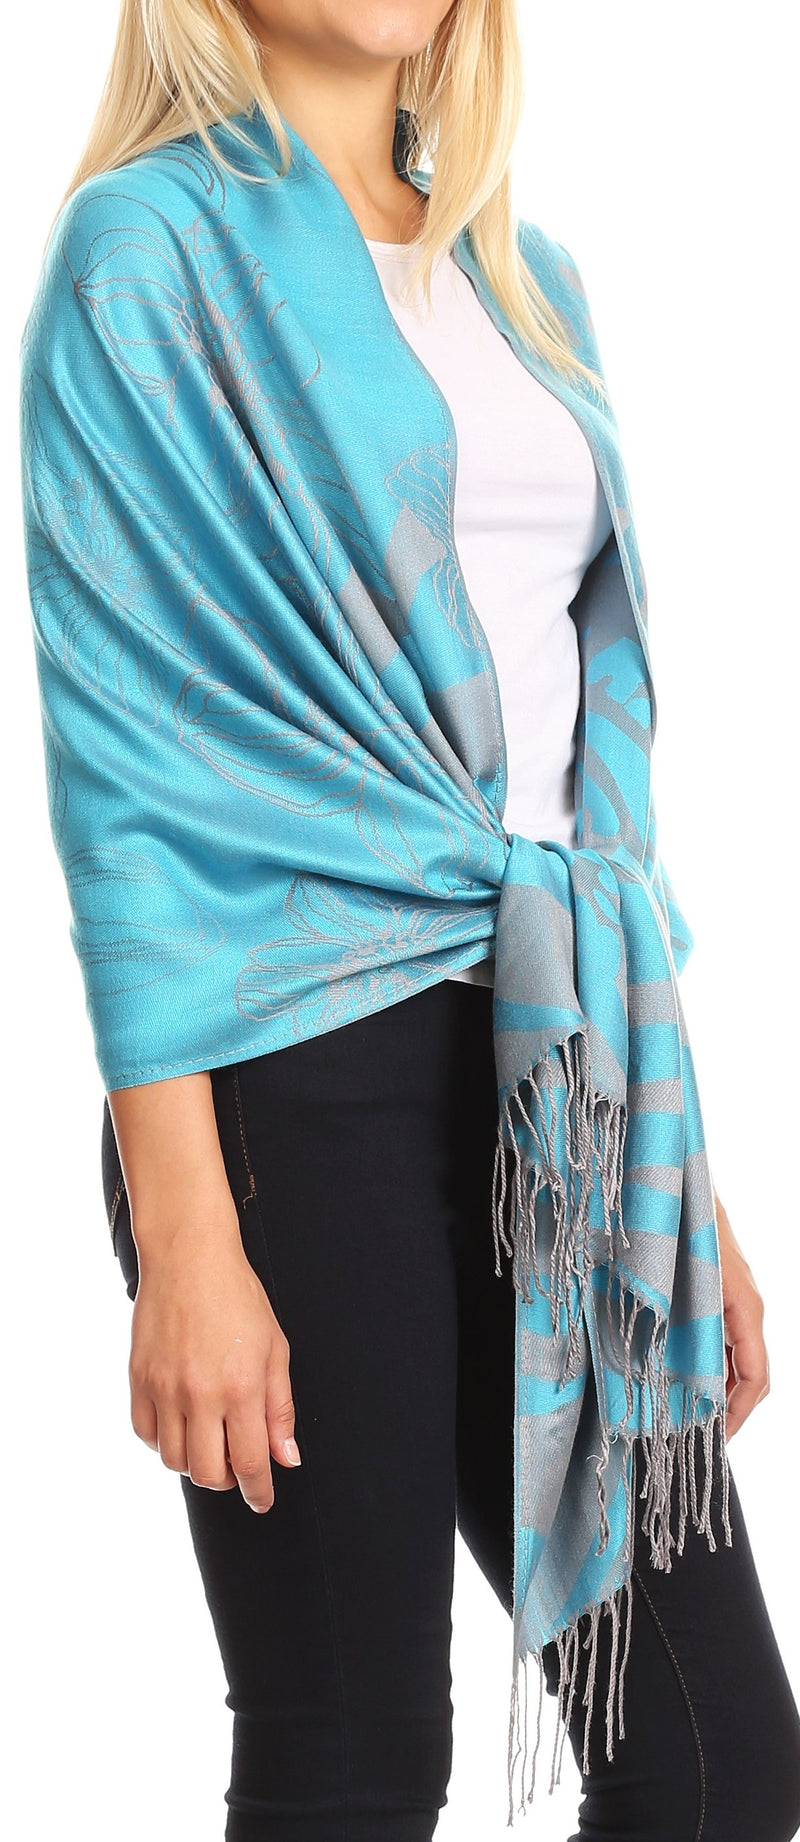 Sakkas Salome  Reversible Silky soft Wrap Shawl Scarf with Lovely Floral Brocade